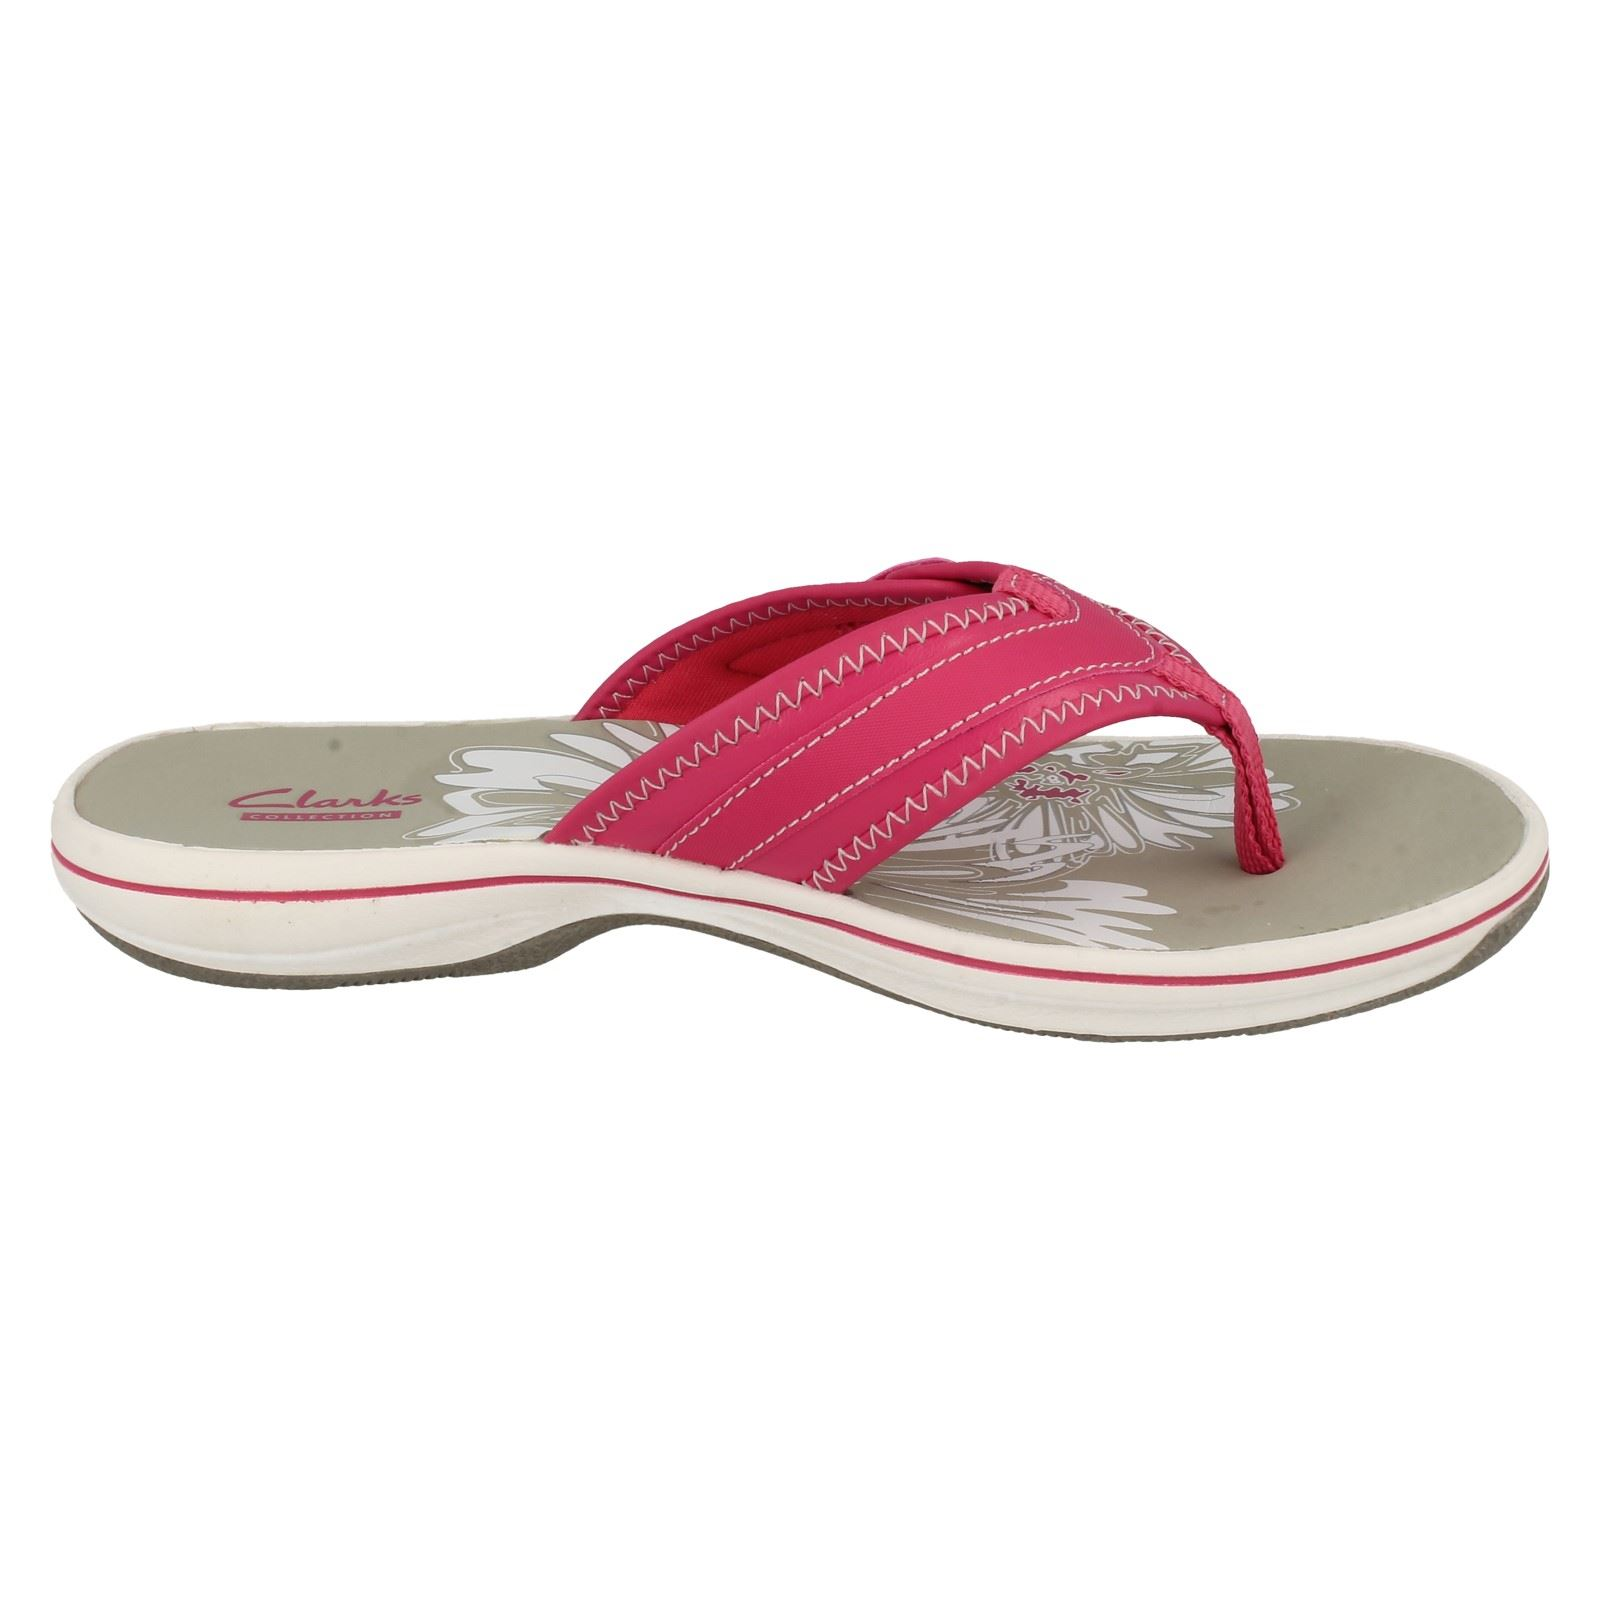 a6970afc5fca Ladies-Clarks-Brinkley-Mila-Toe-Post-Sandals thumbnail 7